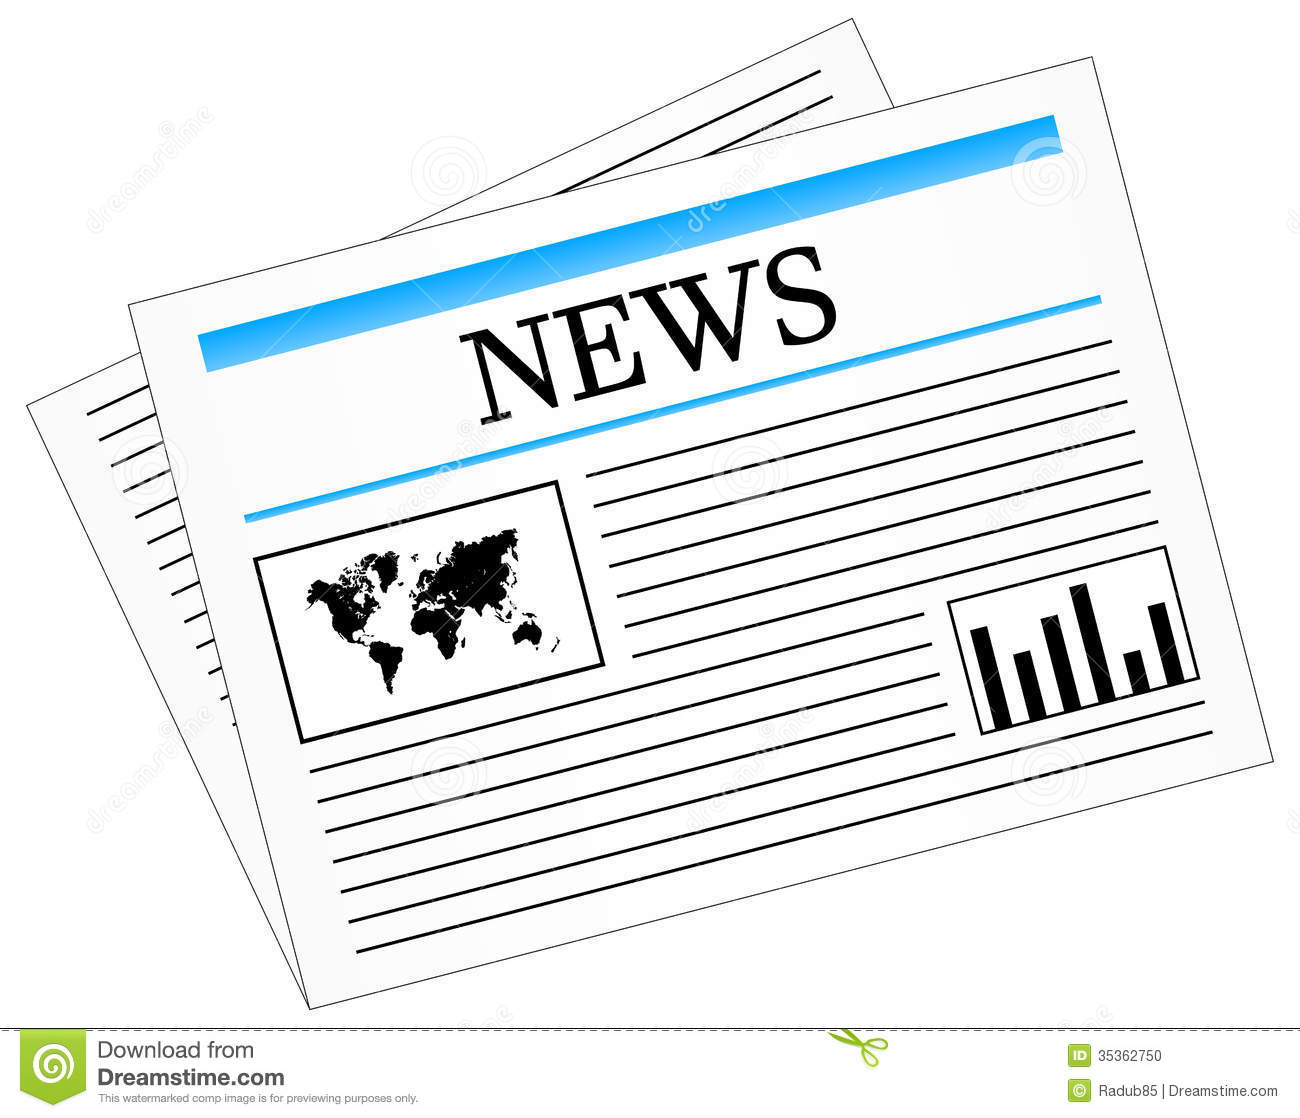 news-newspaper-press-vector-illustration-35362750.jpg